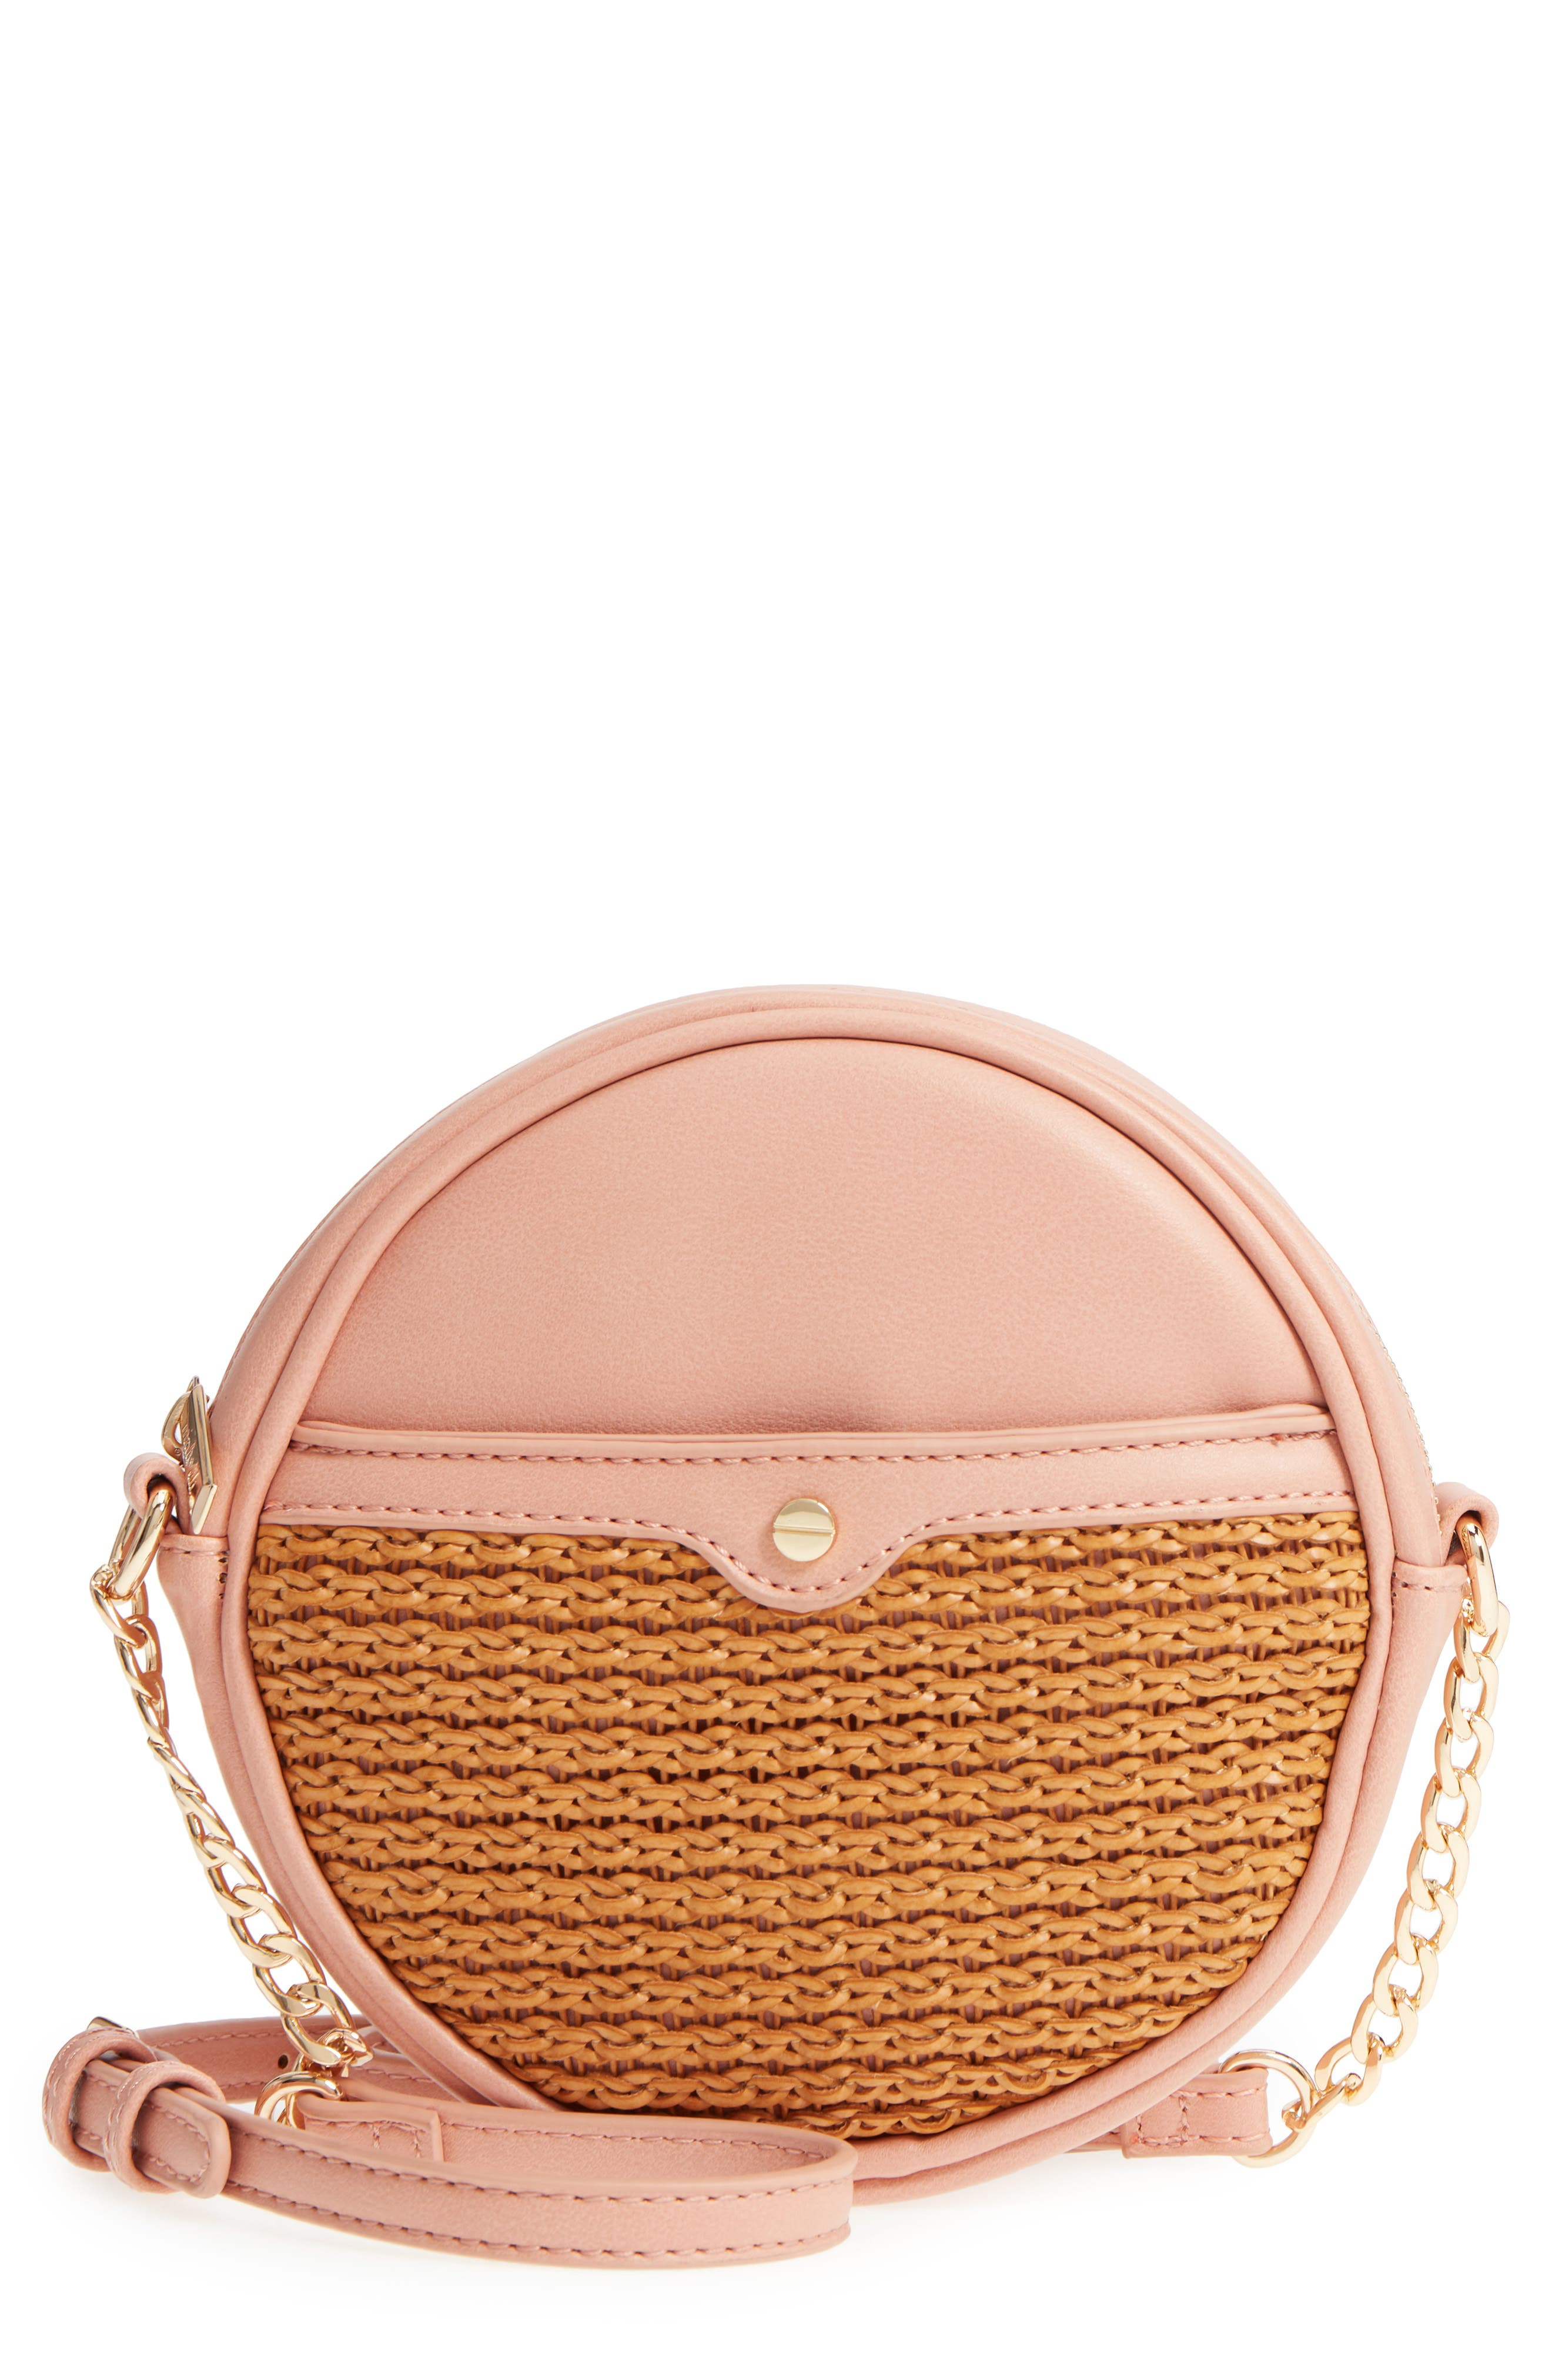 Mali + Lili Basket Weave Vegan Leather Canteen Crossbody Bag,                         Main,                         color, 200